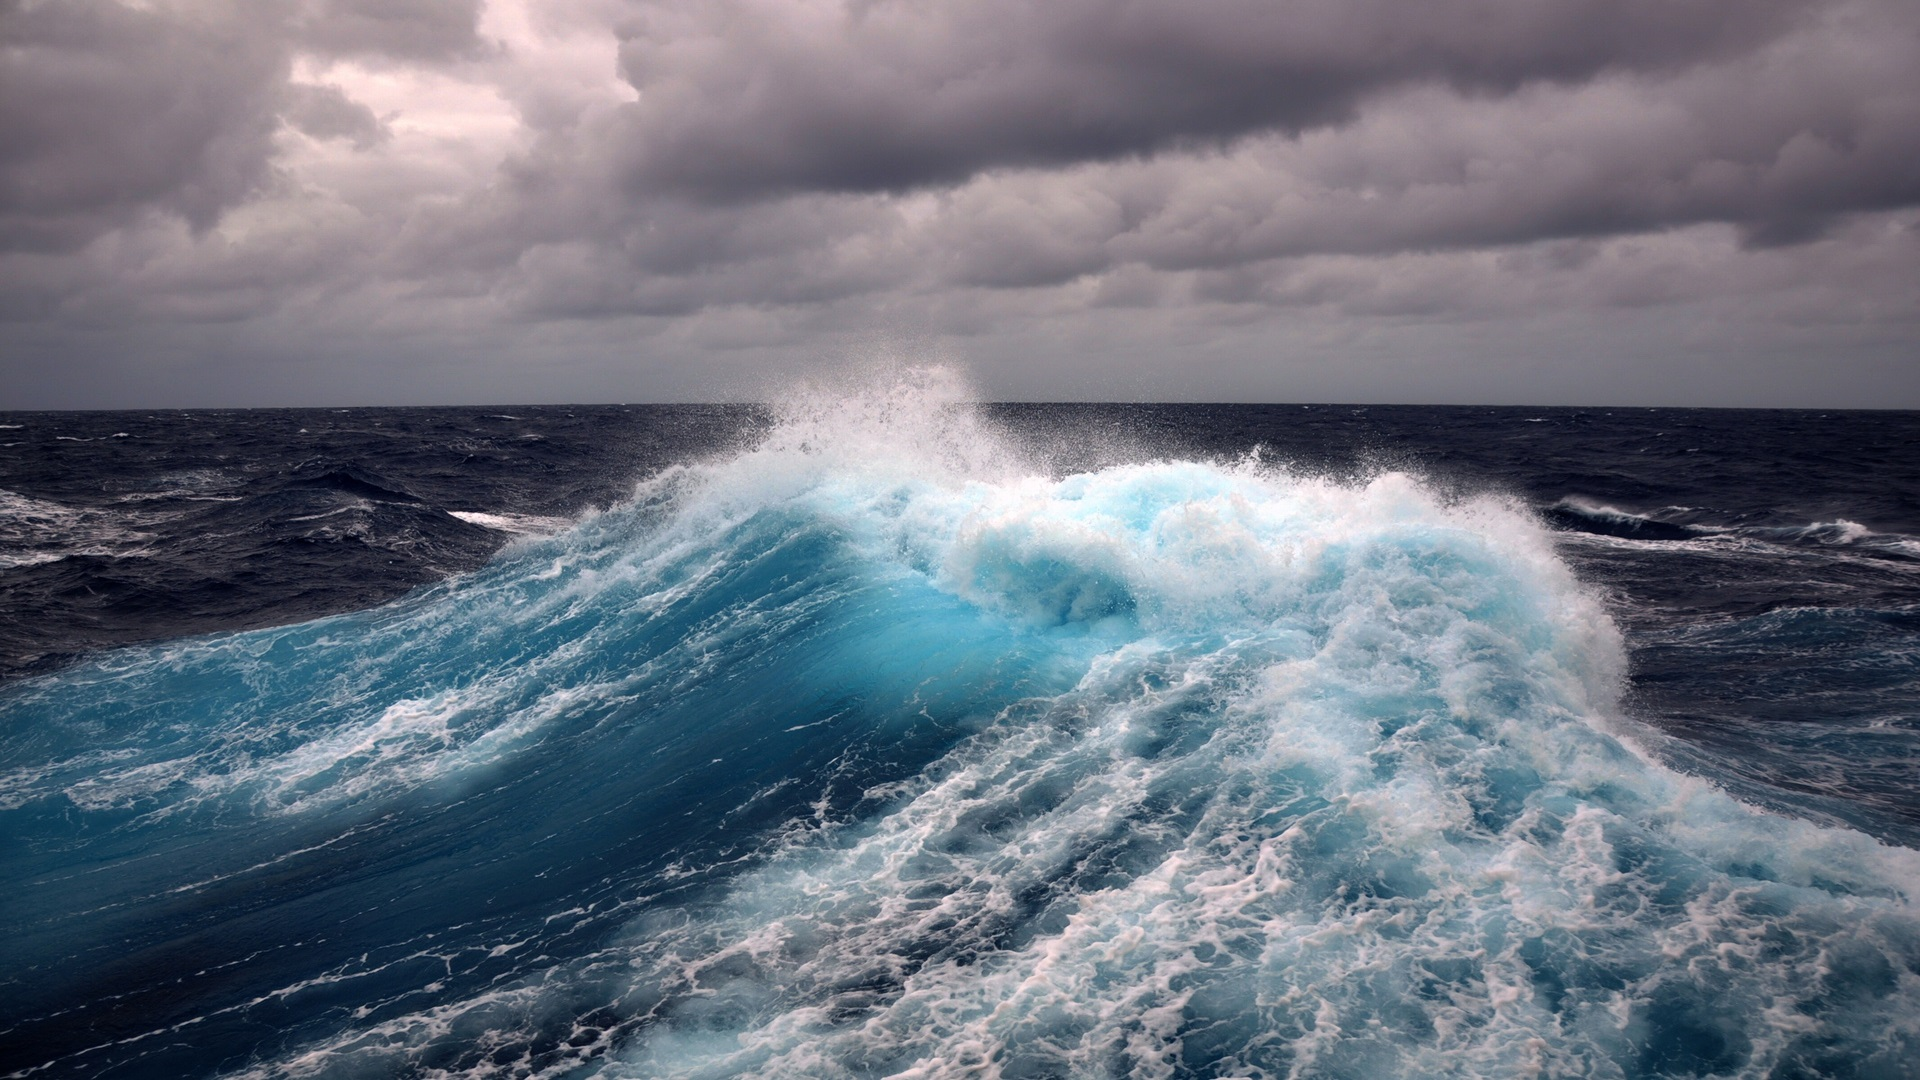 Wallpaper Wind Storm Sea Wave Water 1920x1200 Hd Picture